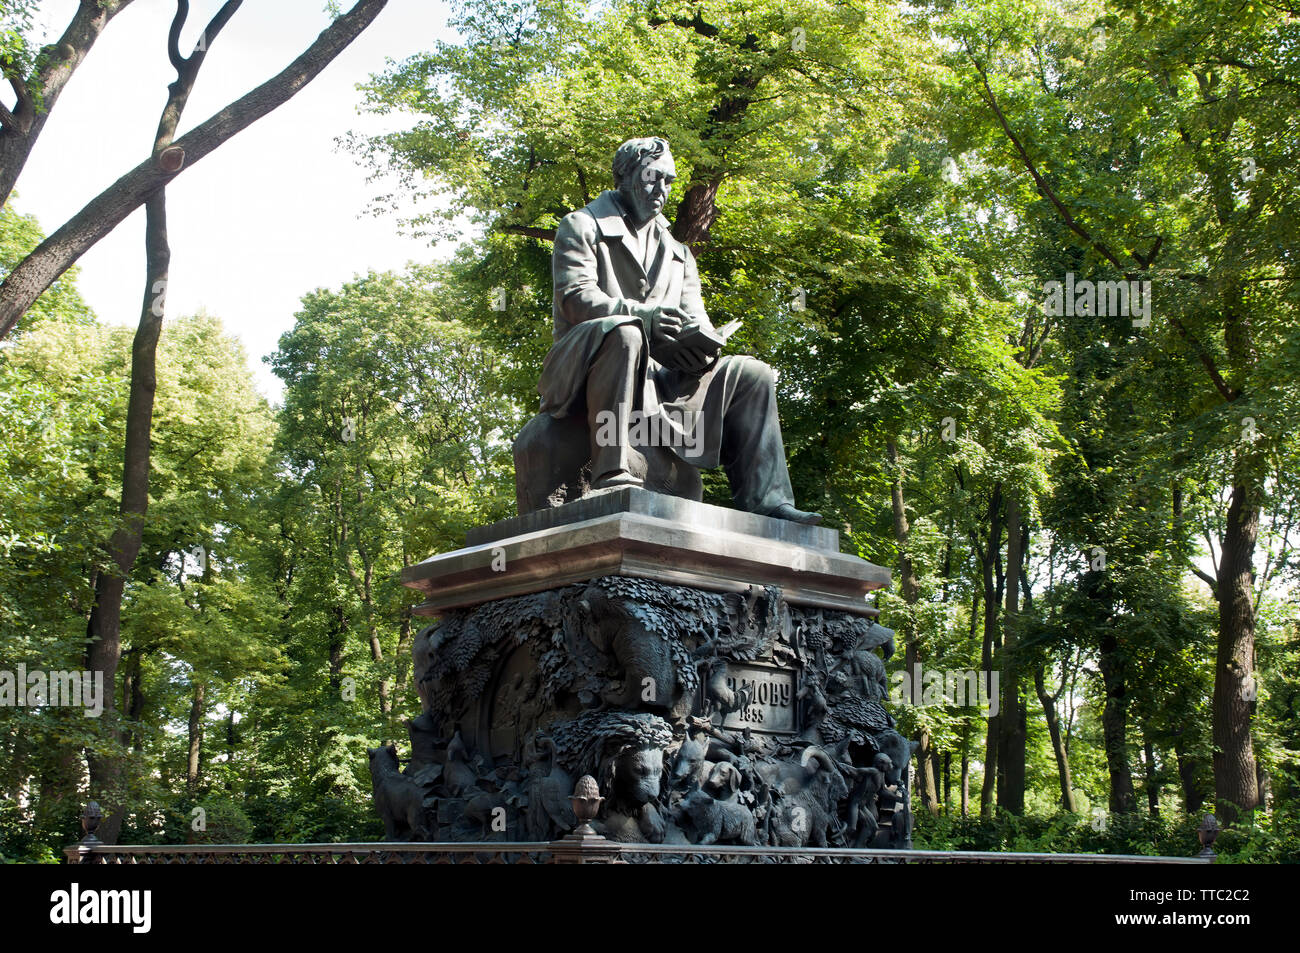 Saint Petersburg Russia, Monument to Ivan Krylov erected 1855 in the Summer Garden - Stock Image